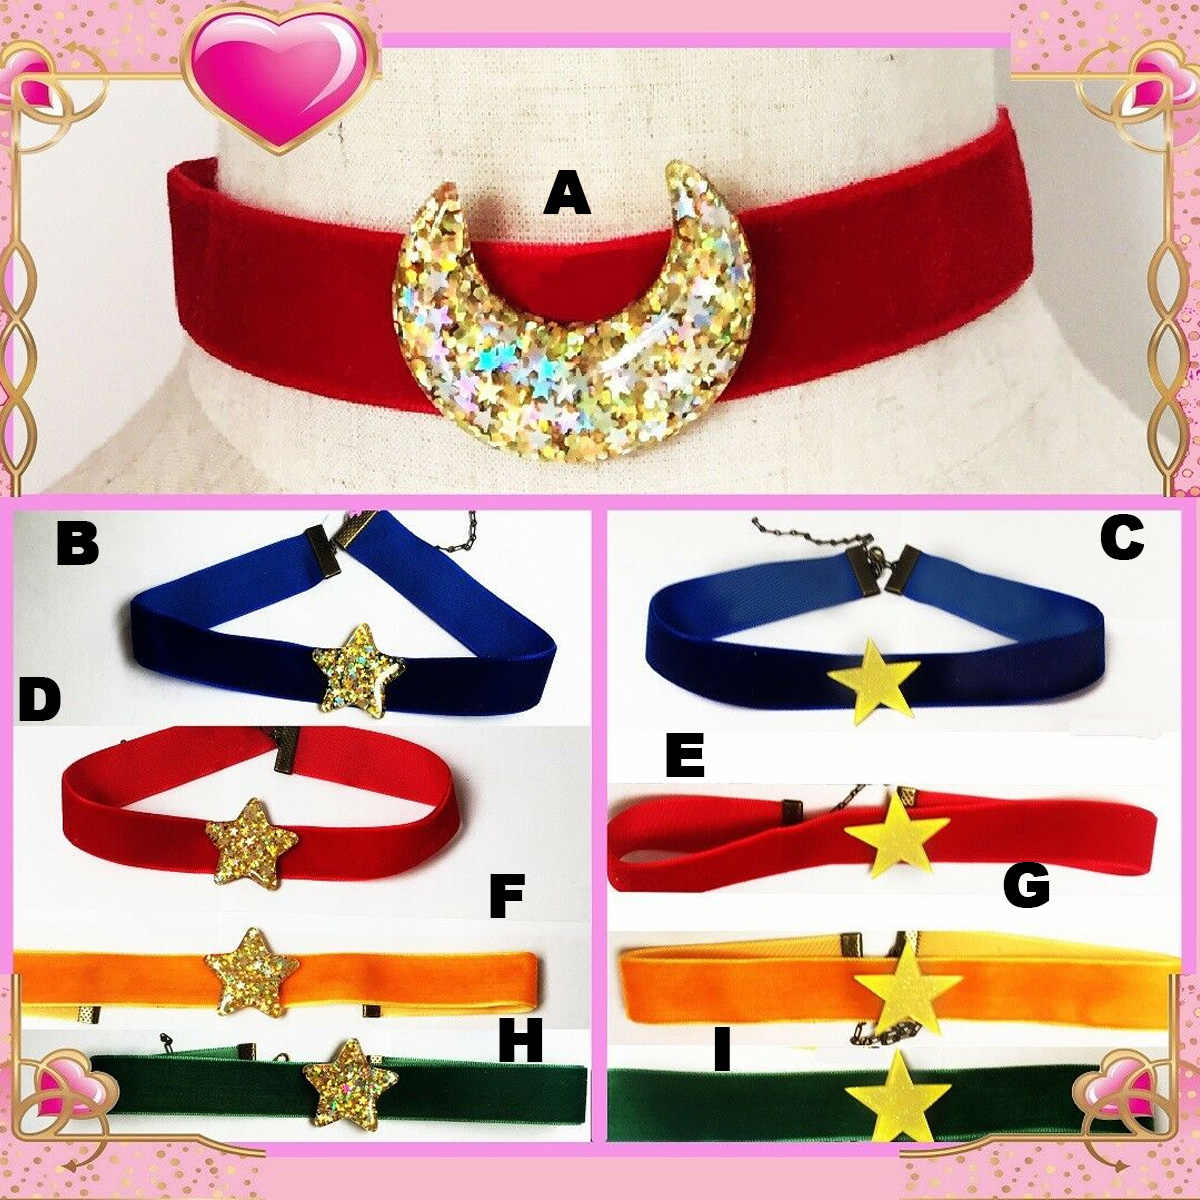 Anime Sailor Moon Tsukino Usagi Stelle Della Collana Del Choker Big Pendente di Lolita Cosplay